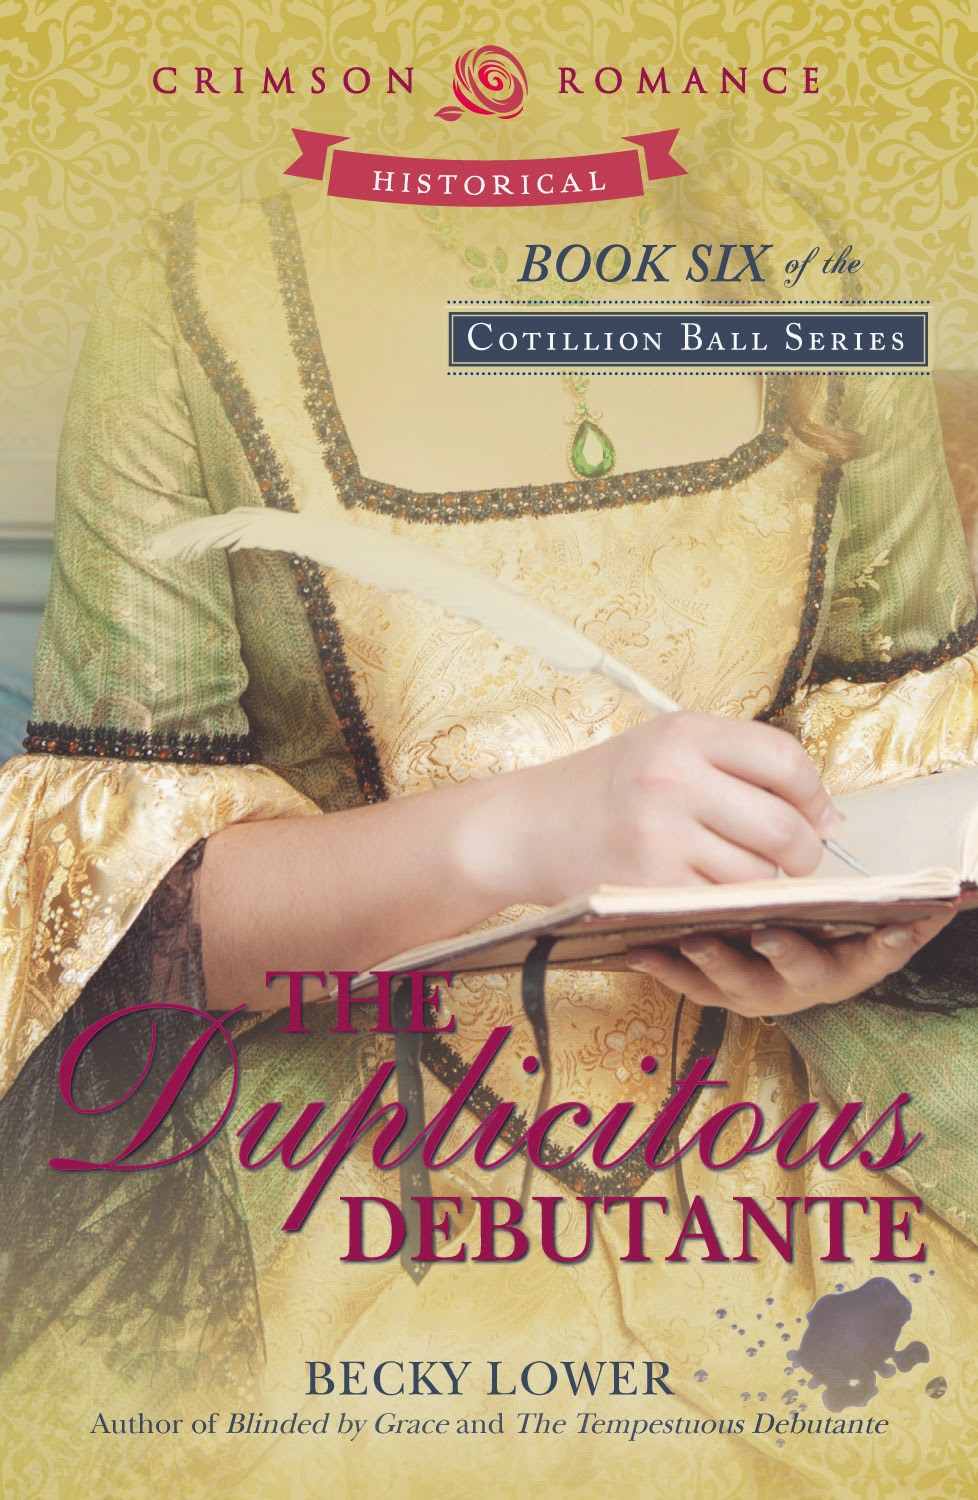 Book #6 in The Cotillion Ball Series